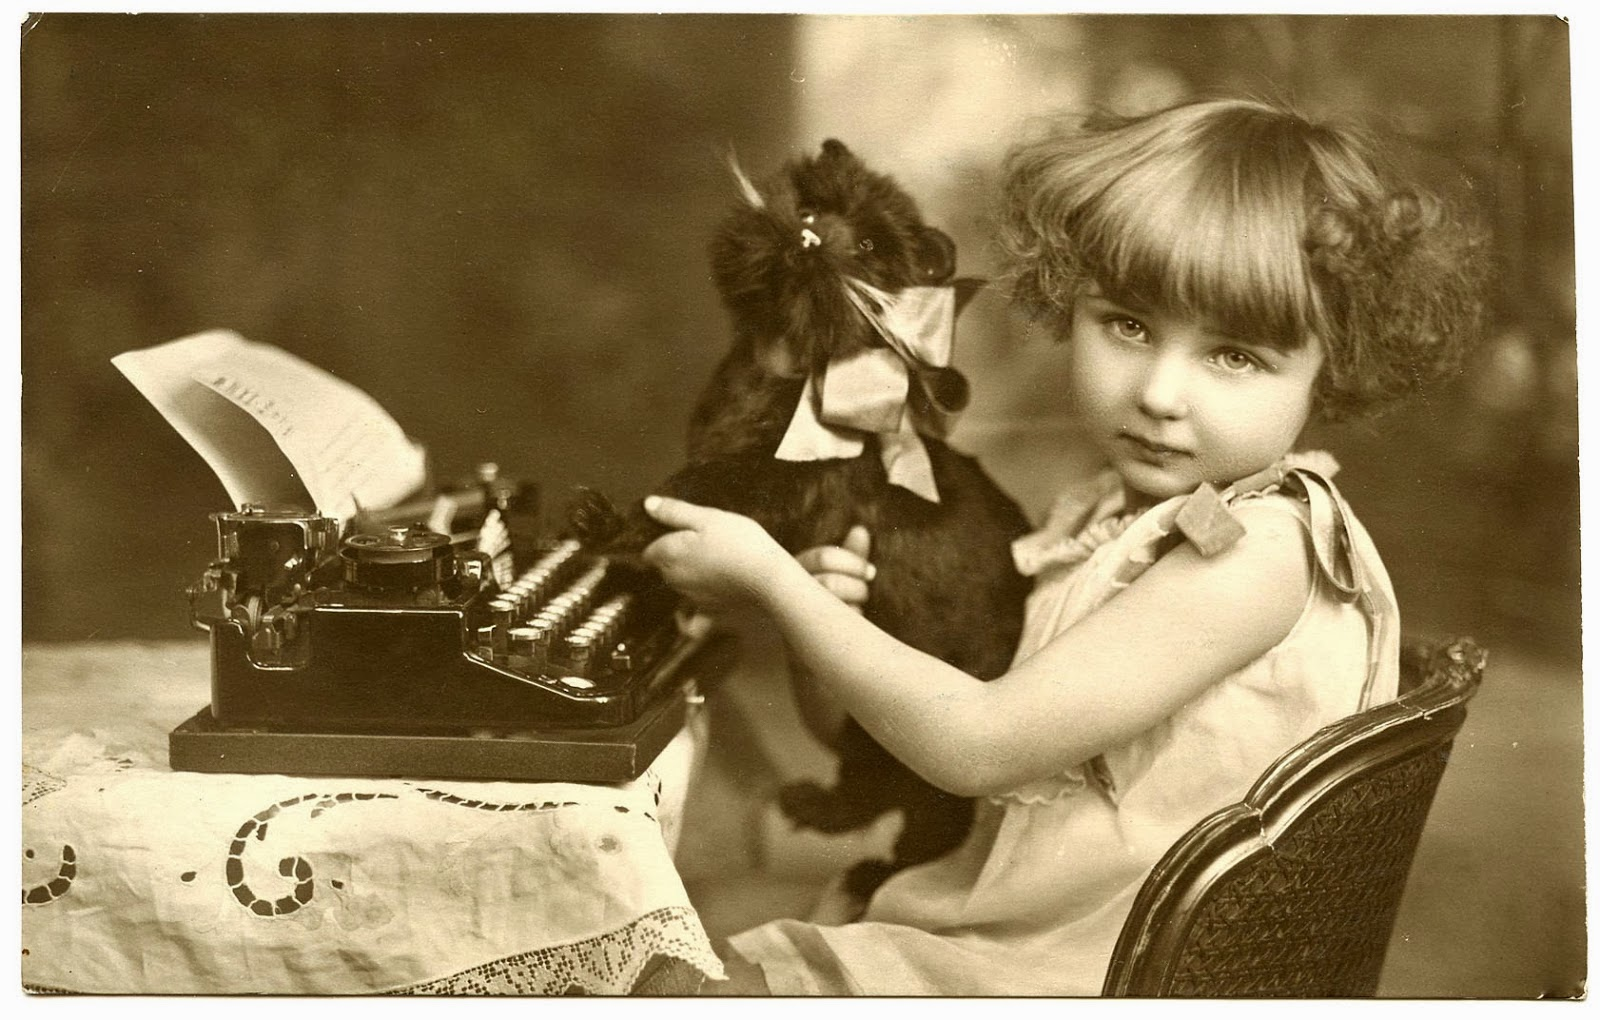 Vintage photo of a small girl siting at a typewriter with a toy cat.